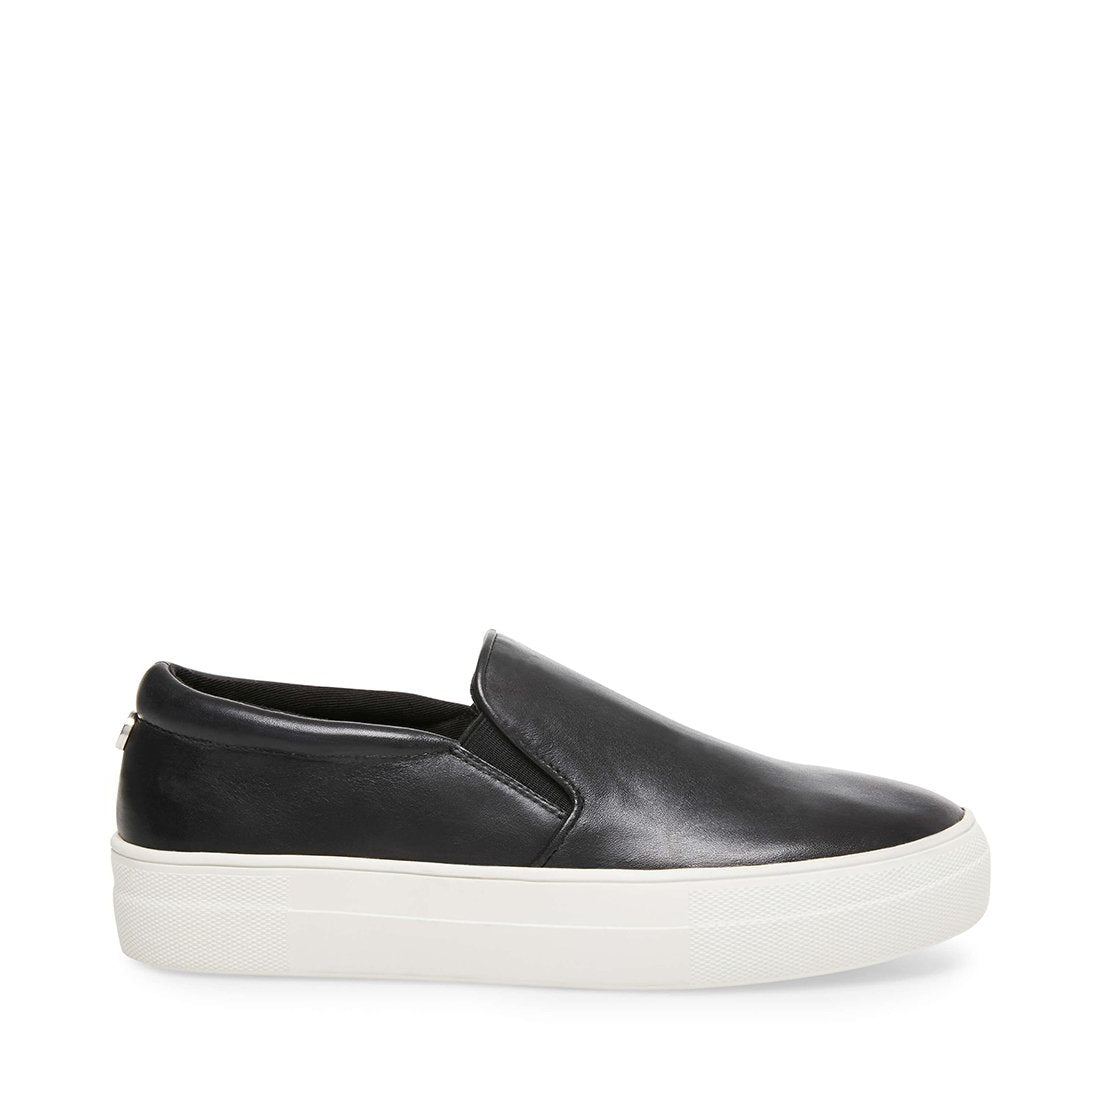 ab39bb4a982 GILLS BLACK LEATHER – Steve Madden